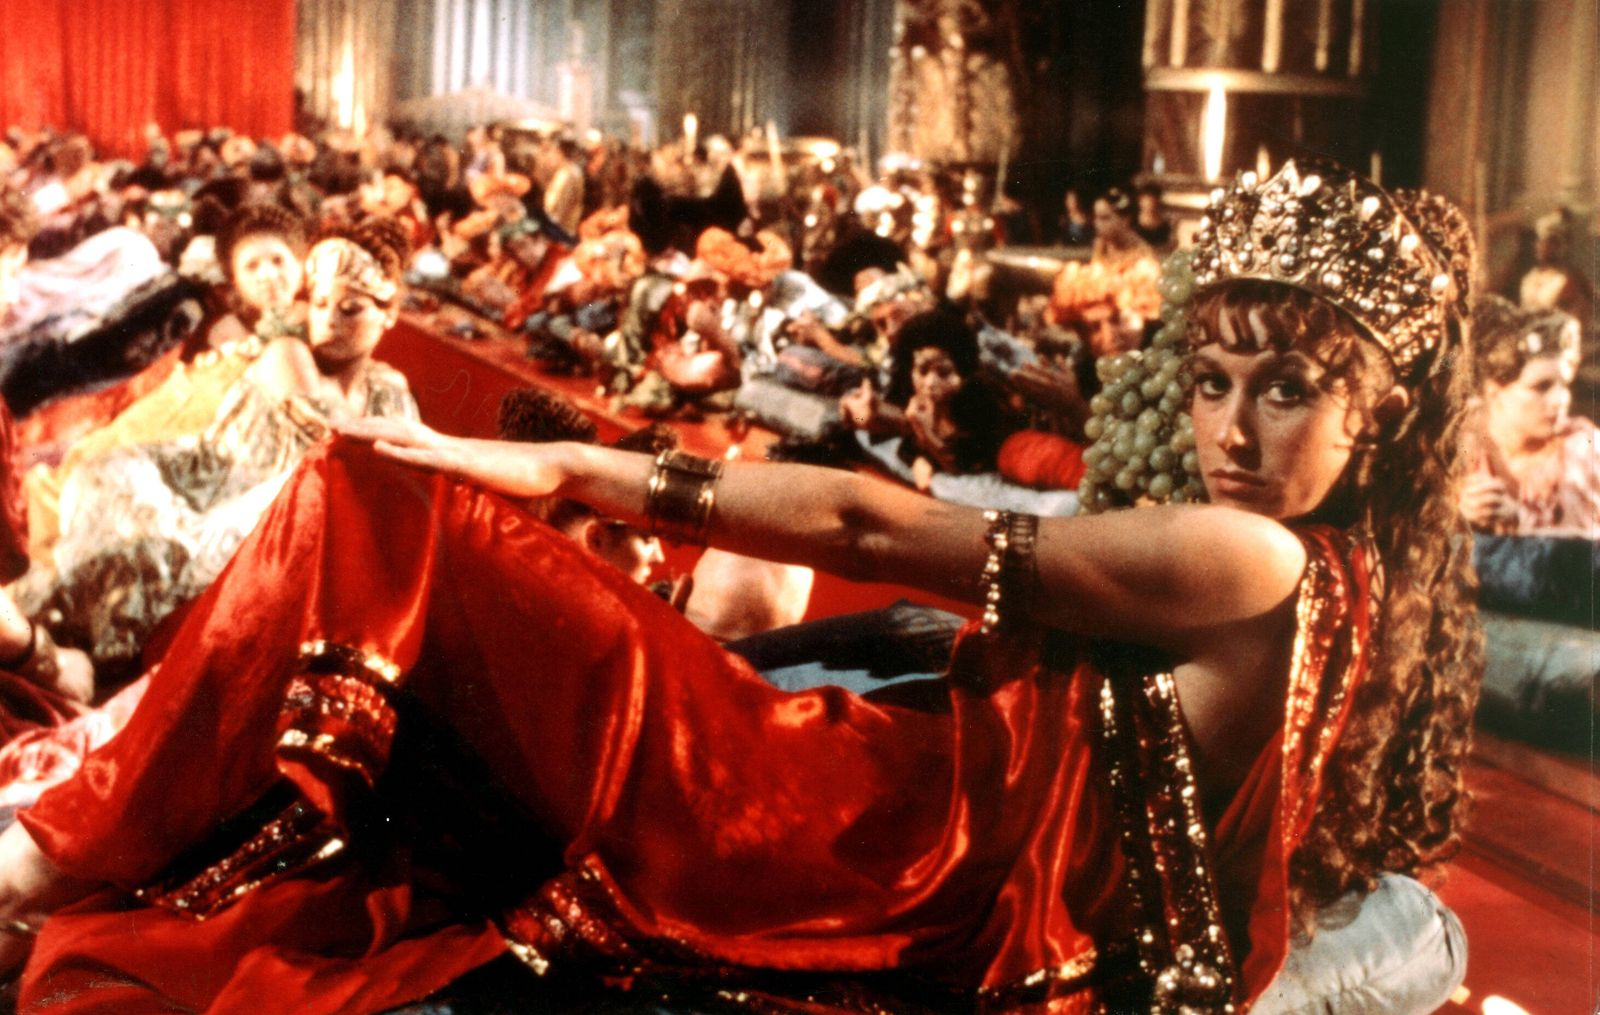 Helen Mirren Characters: Caesonia Film: Caligula (1975) Director: Tinto Brass & Bob Guccione 14 August 1979 PUBLICATION